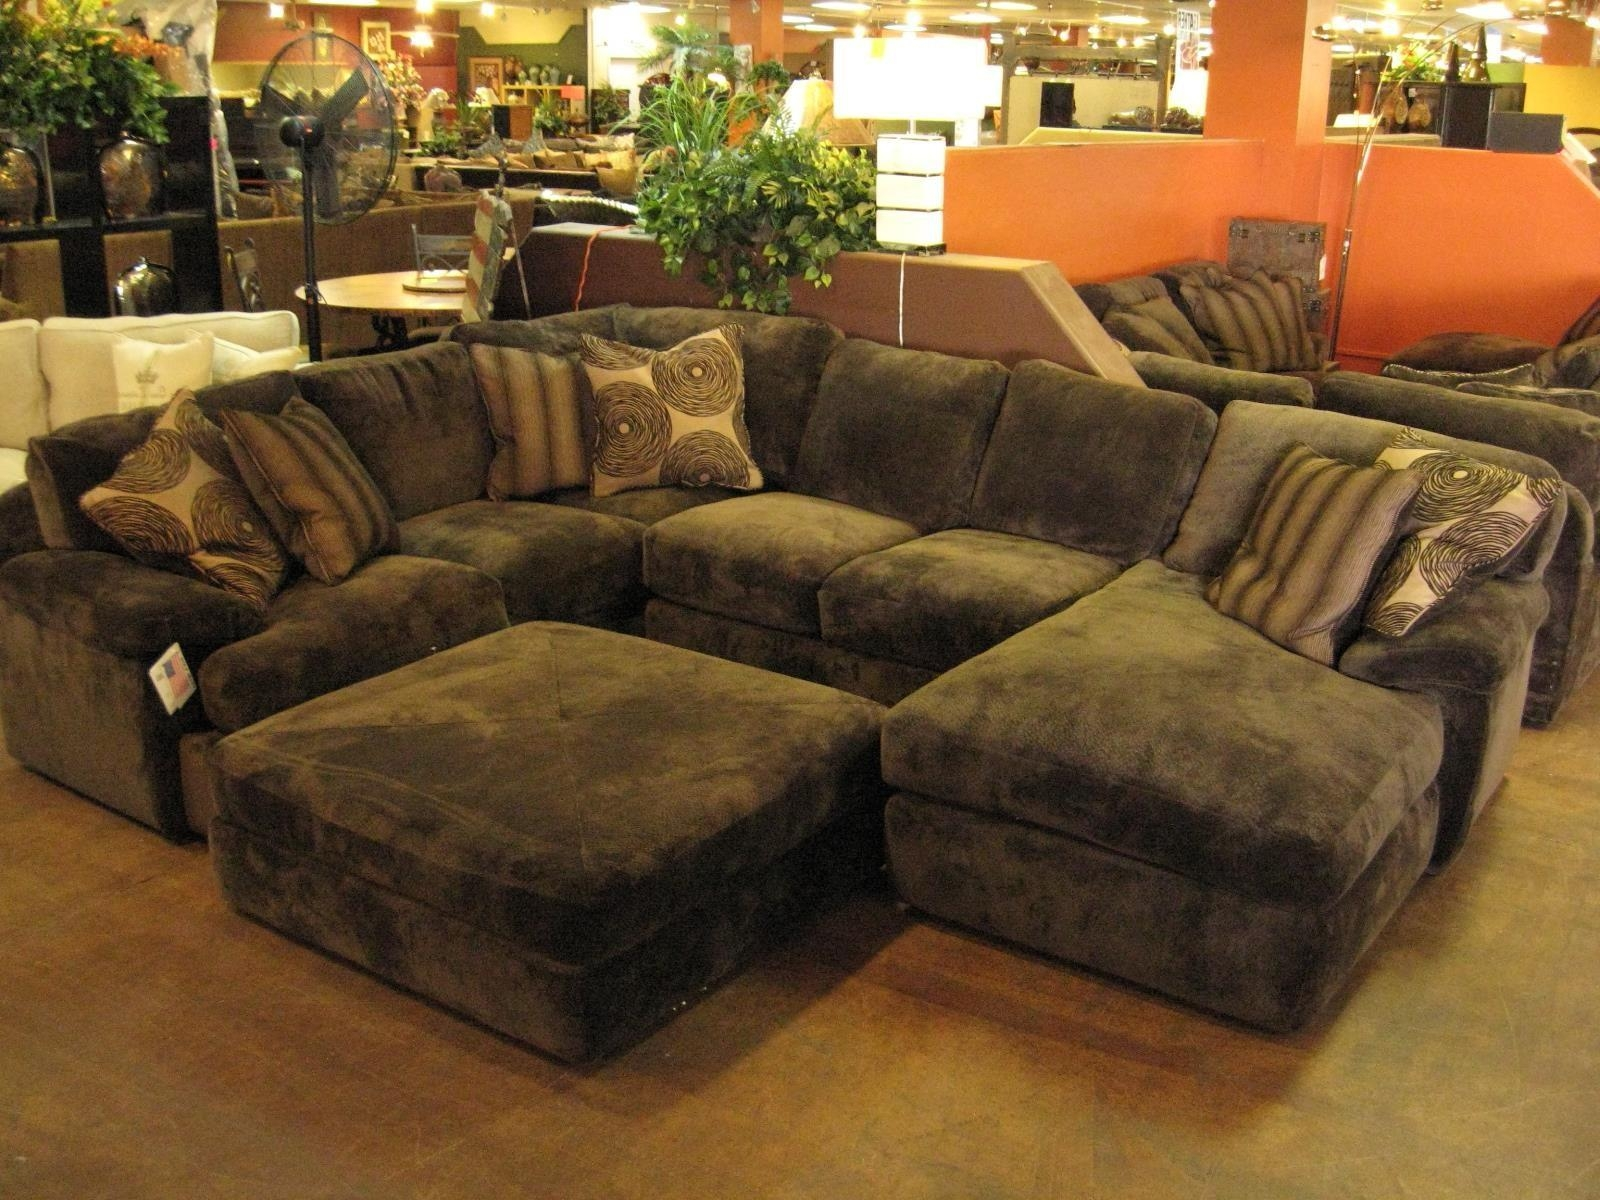 Sofas Center : Sectional Sofa With Oversized Ottoman Home Design Within Sectional With Oversized Ottoman (Image 18 of 20)